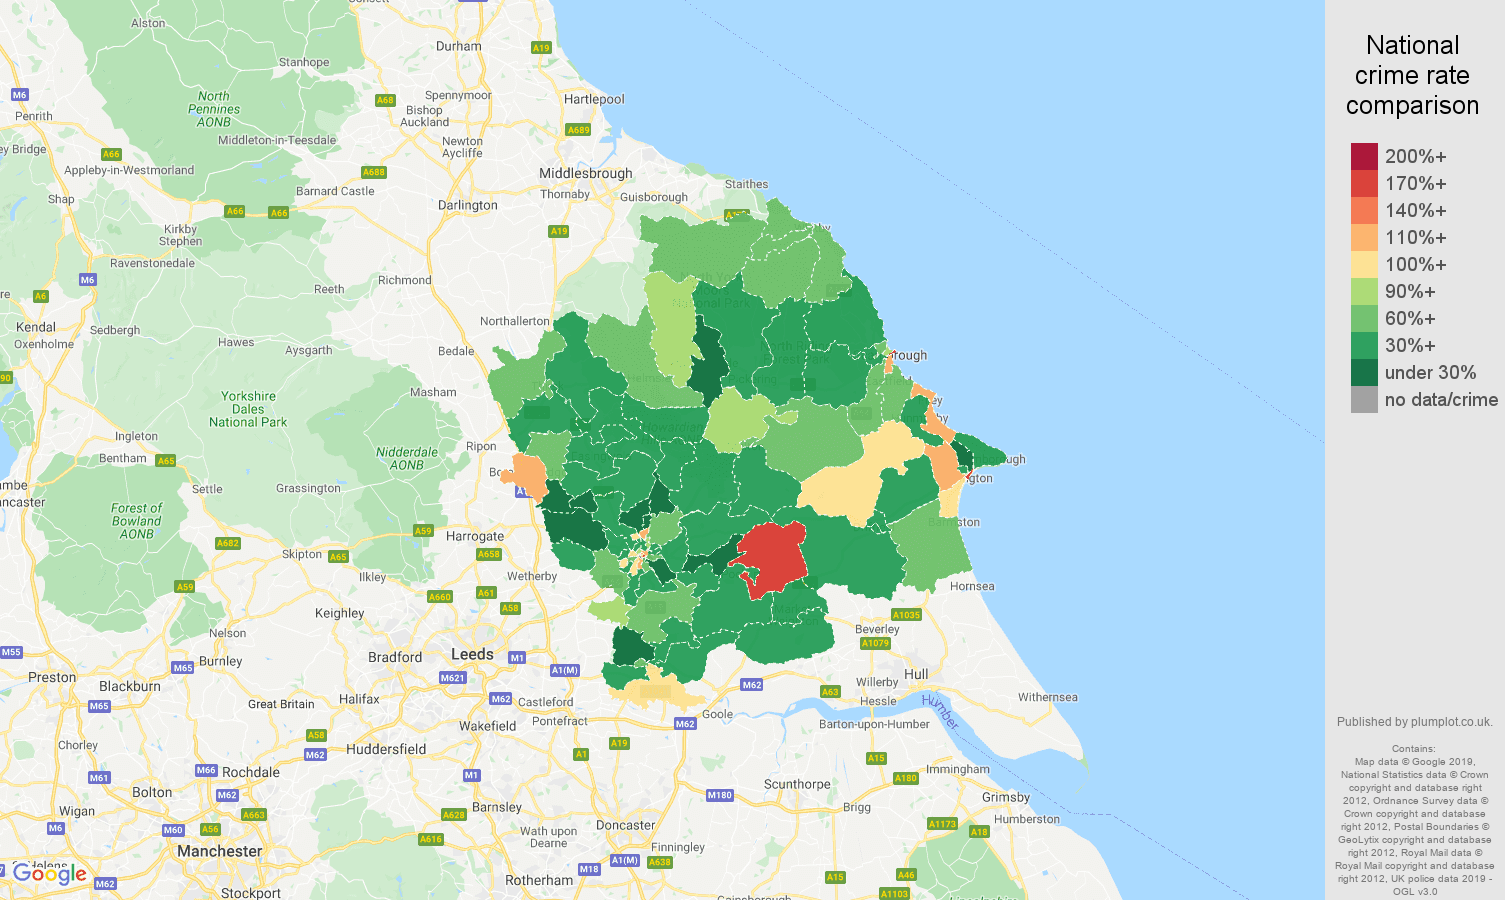 York other theft crime rate comparison map